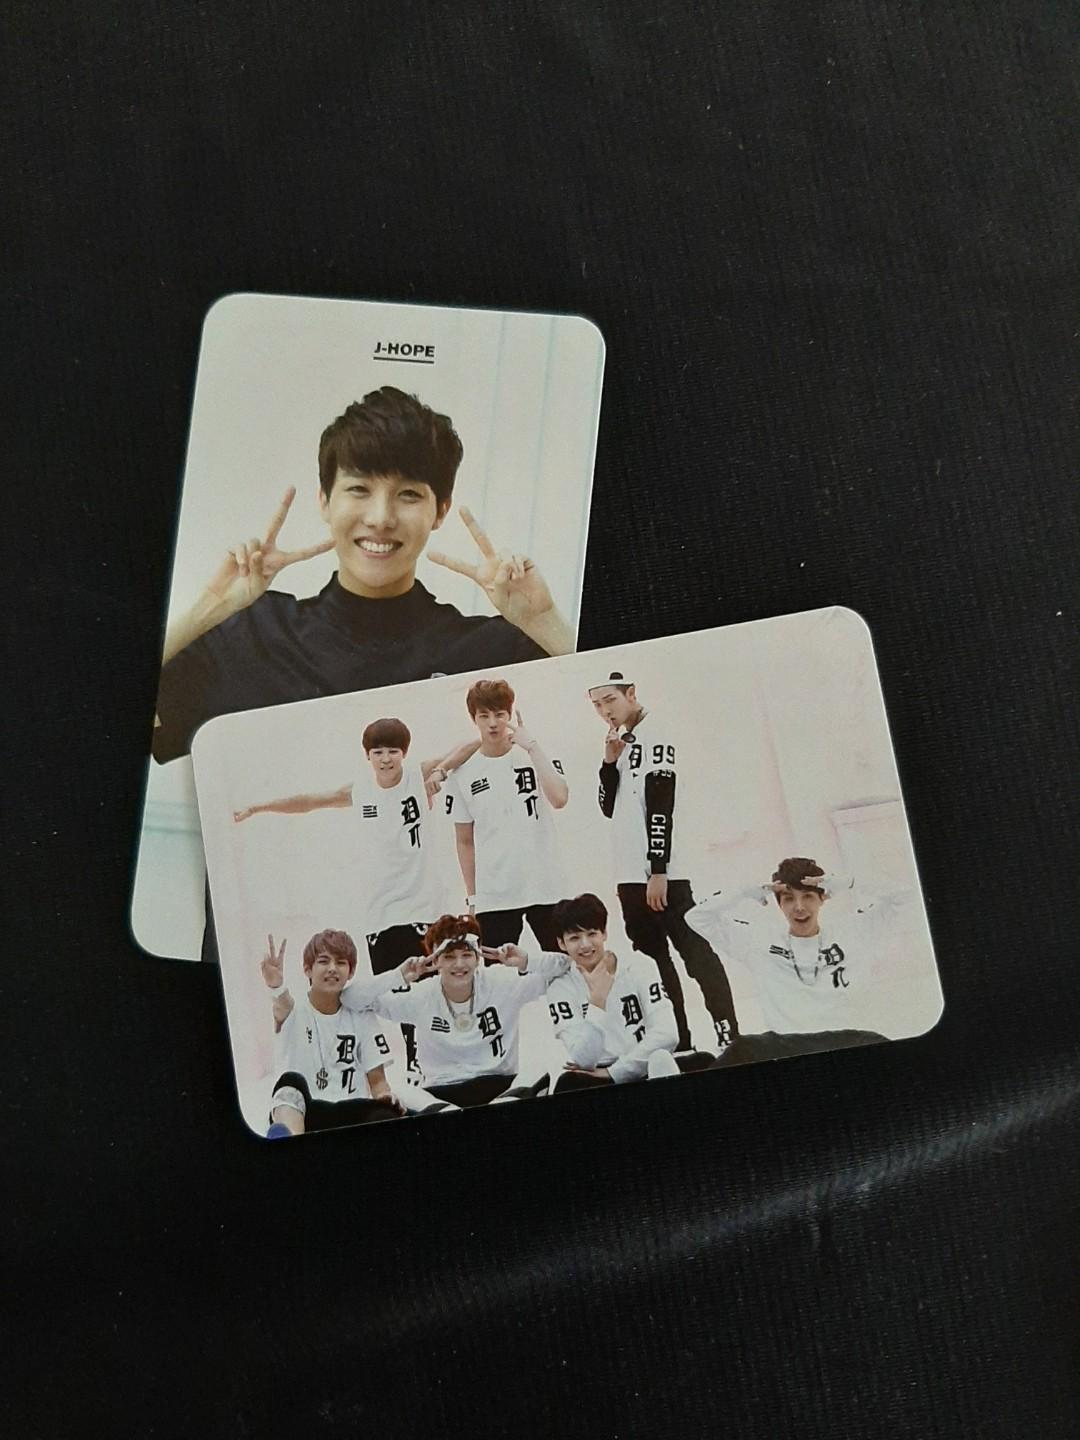 BTS ALBUM: O!RUL82? UNSEALED WITH JHOPE AND GROUP PC